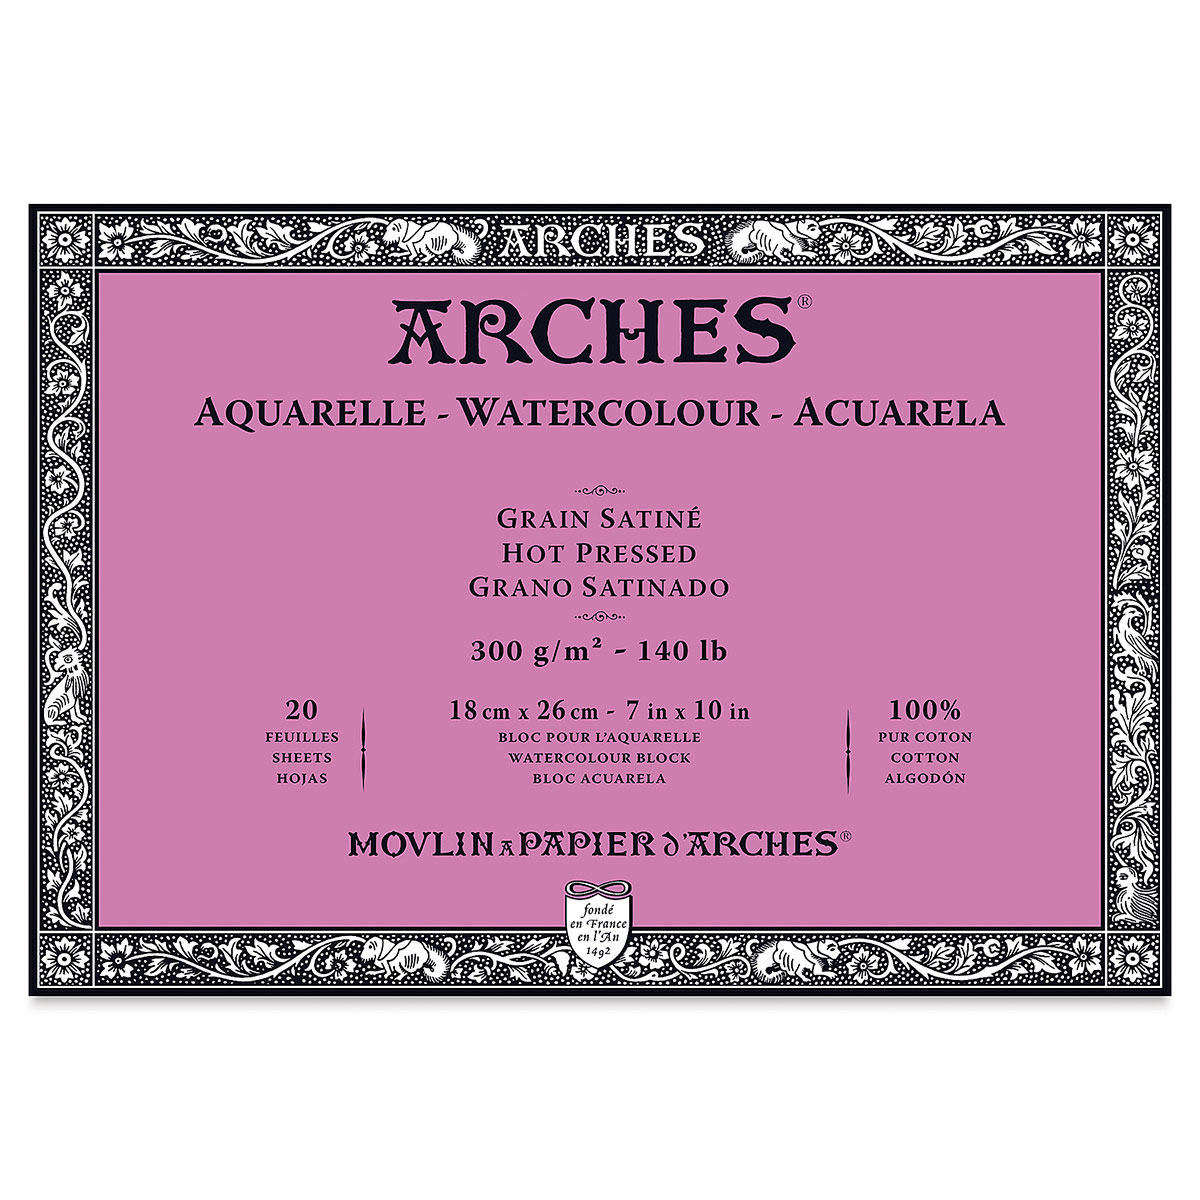 Arches 100% Cotton Watercolor Block (A4(-) Size: 18x26cms) Hot Pressed; 300 GSM; 20 Sheets